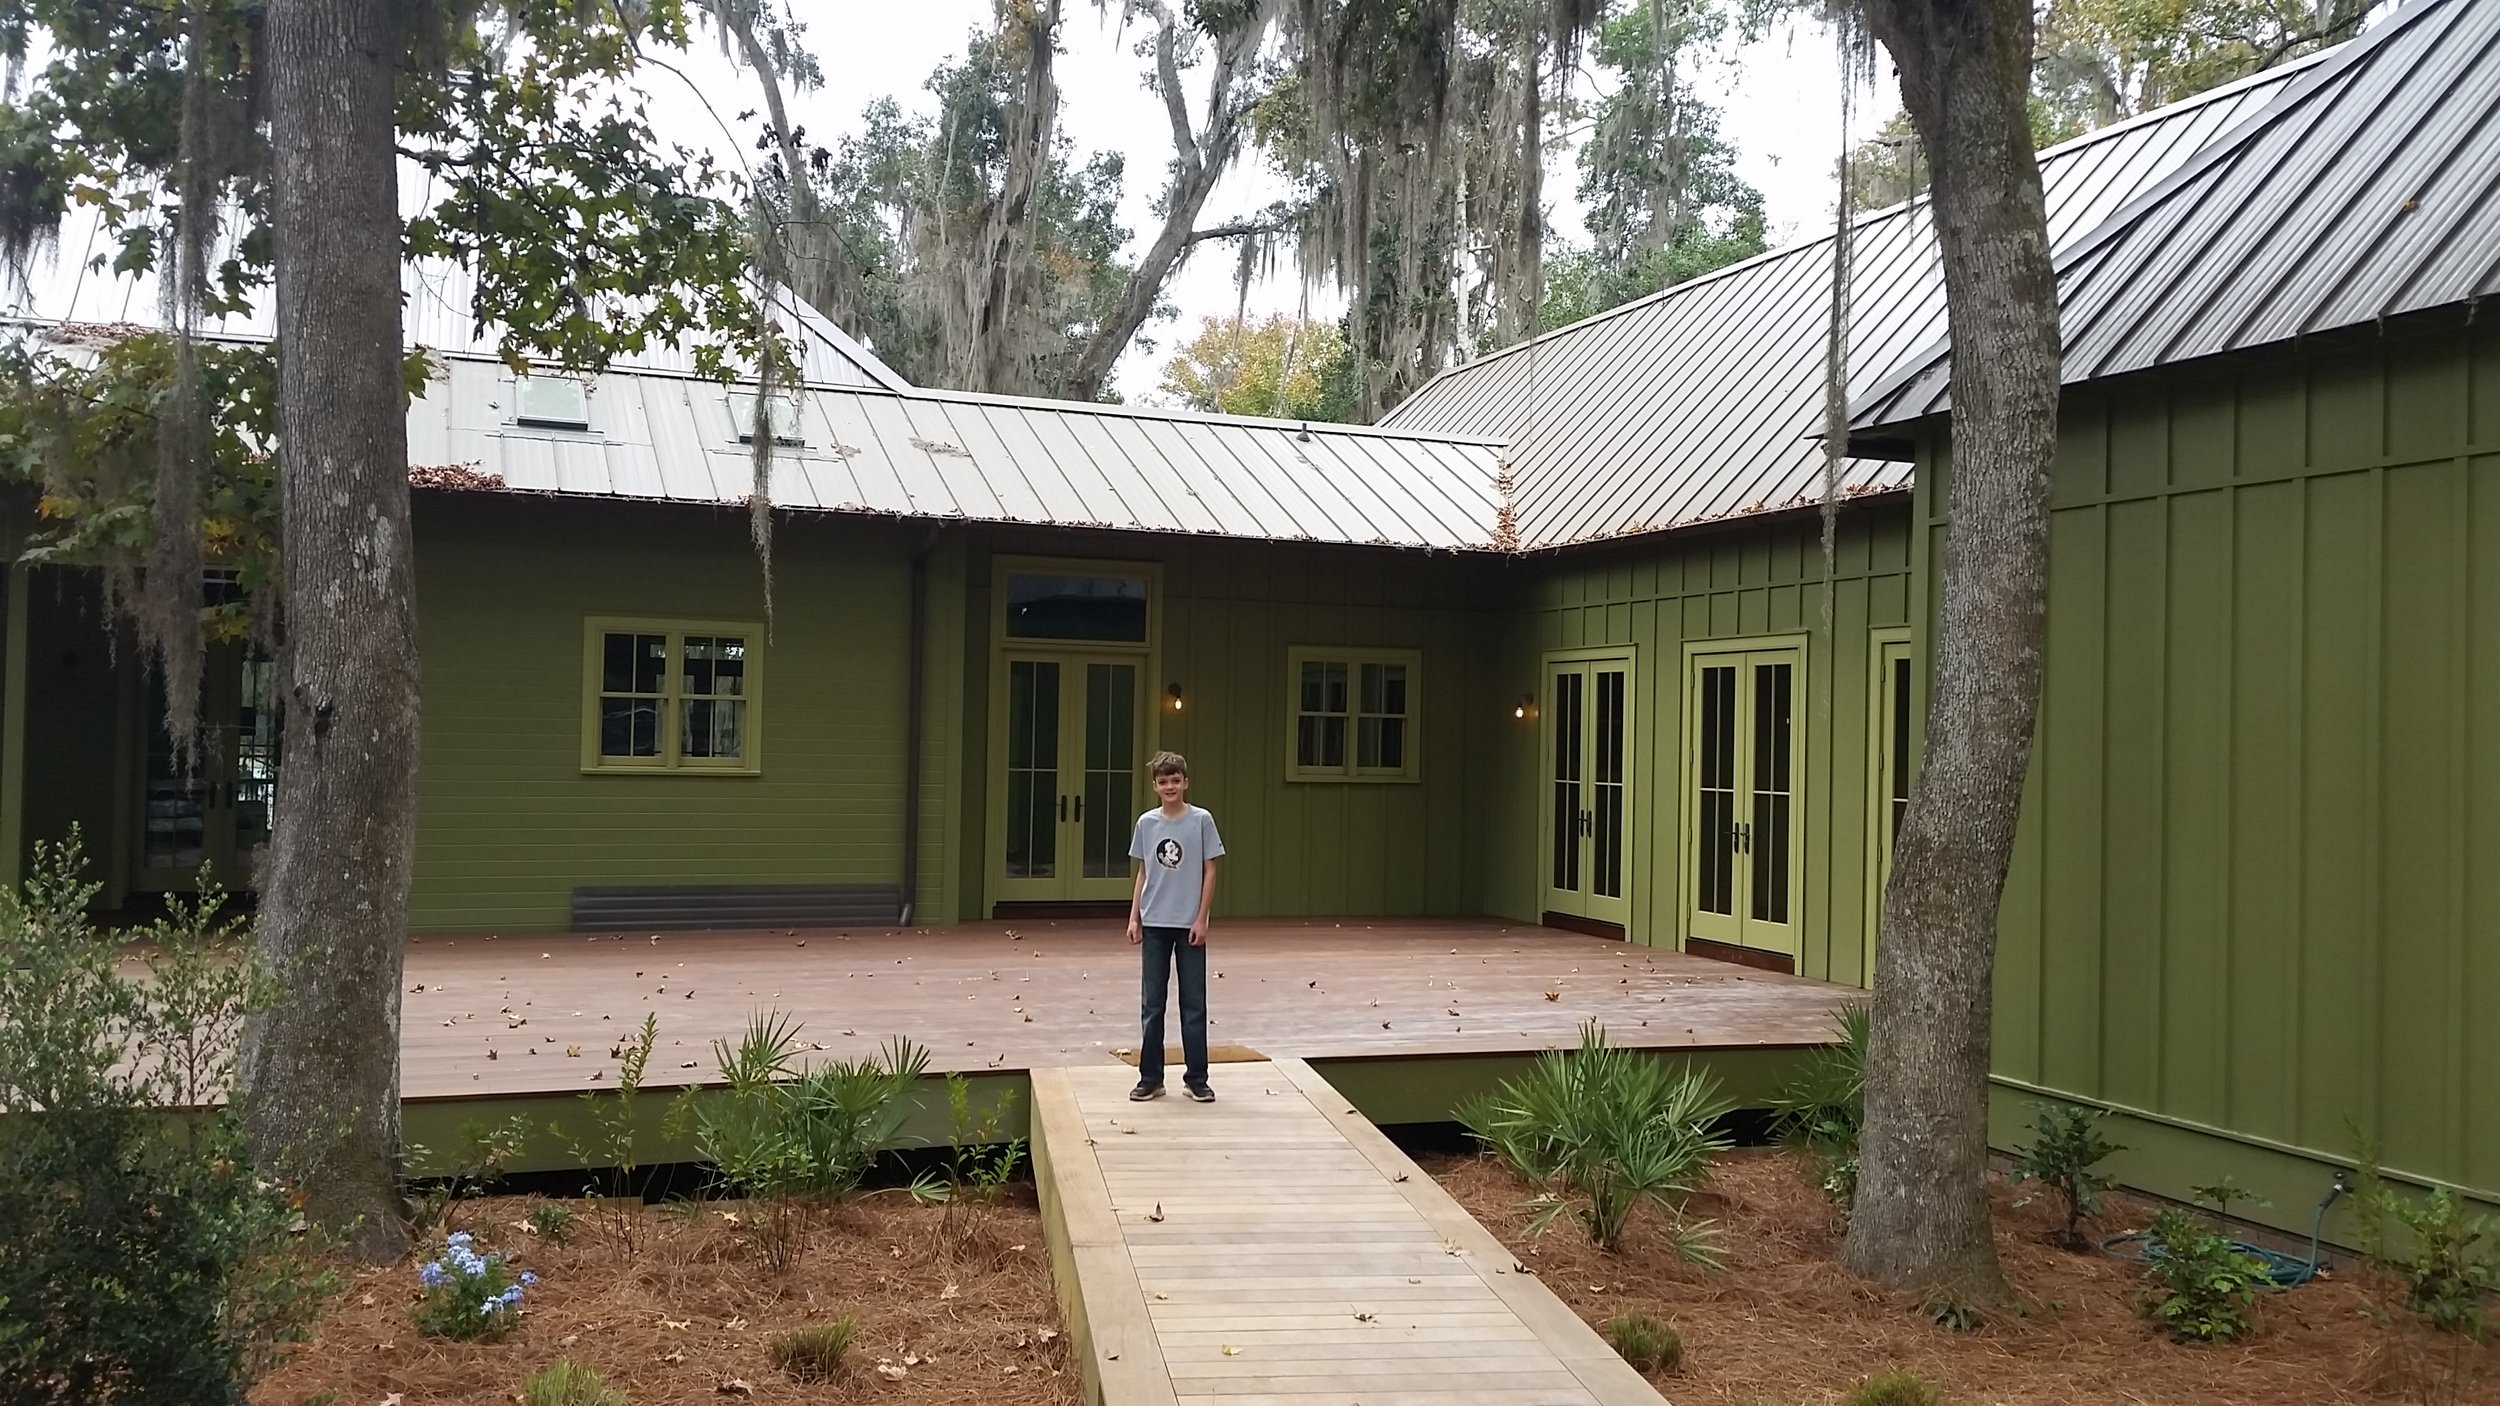 Our son posing at the custom home project